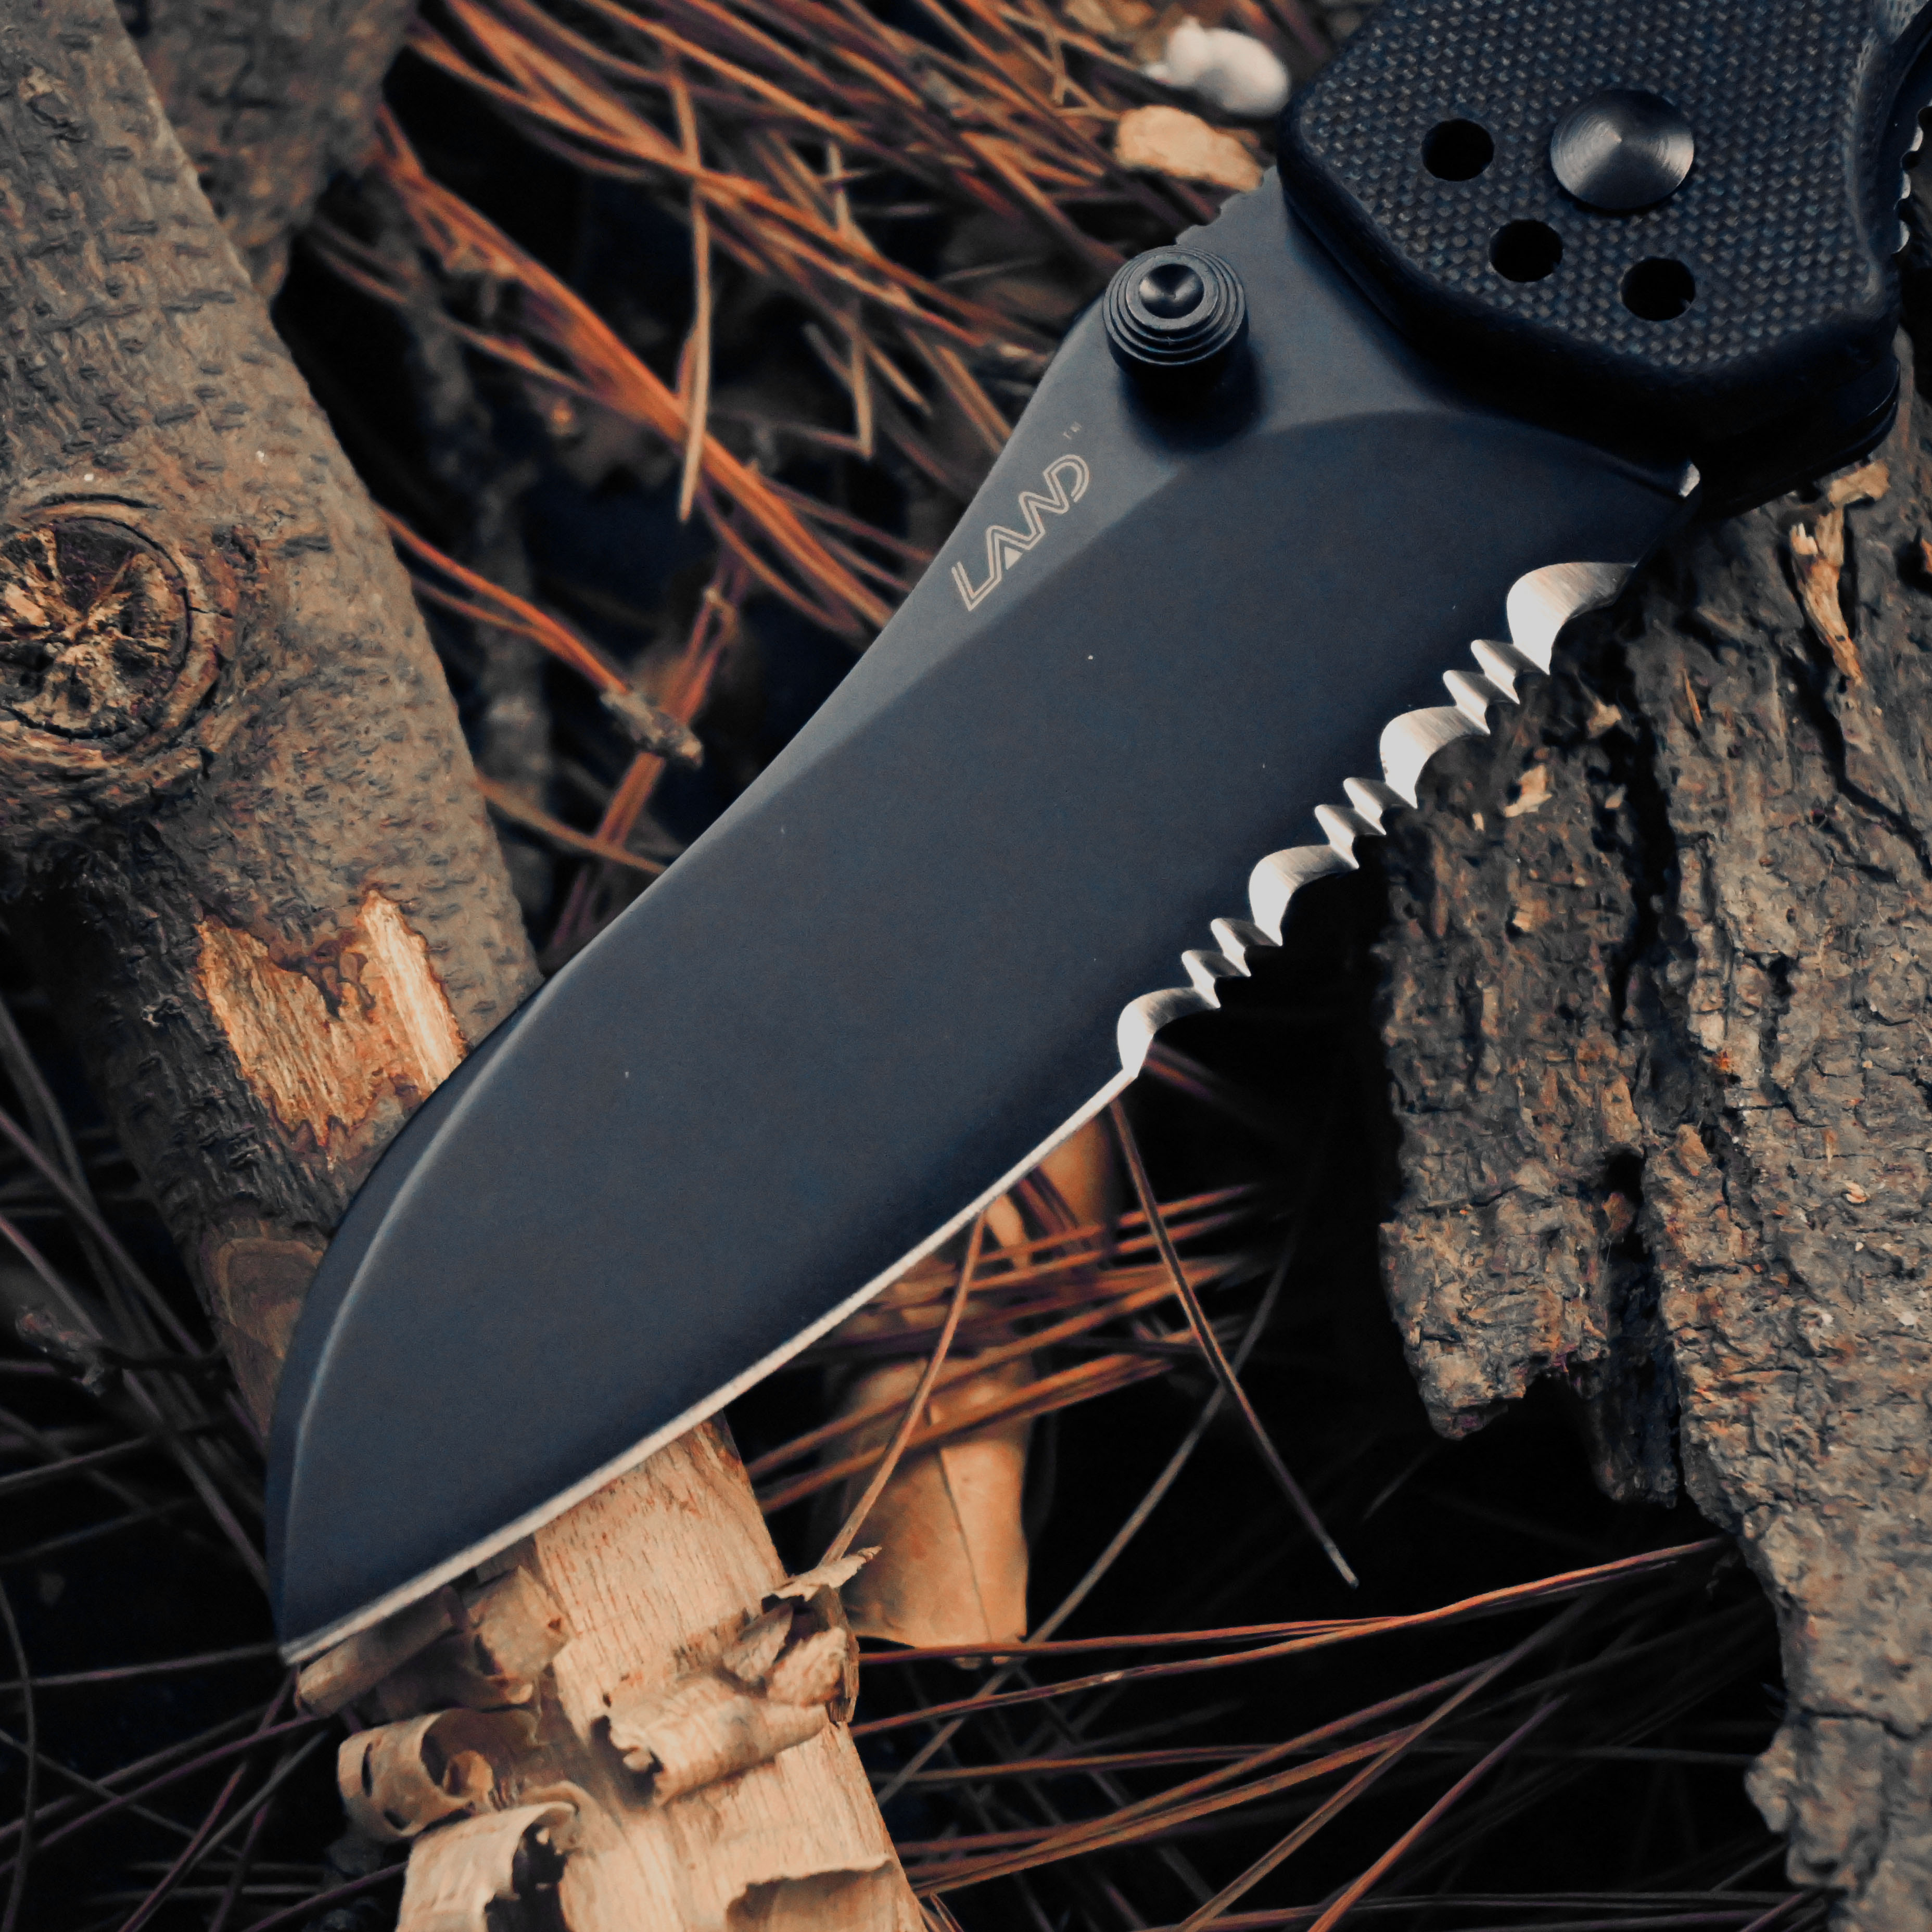 Tools : New Land 913P Folding Knife 8C14 Blade G10 handle Outdoor Tactical Survival Camping Utility Military MultiTool